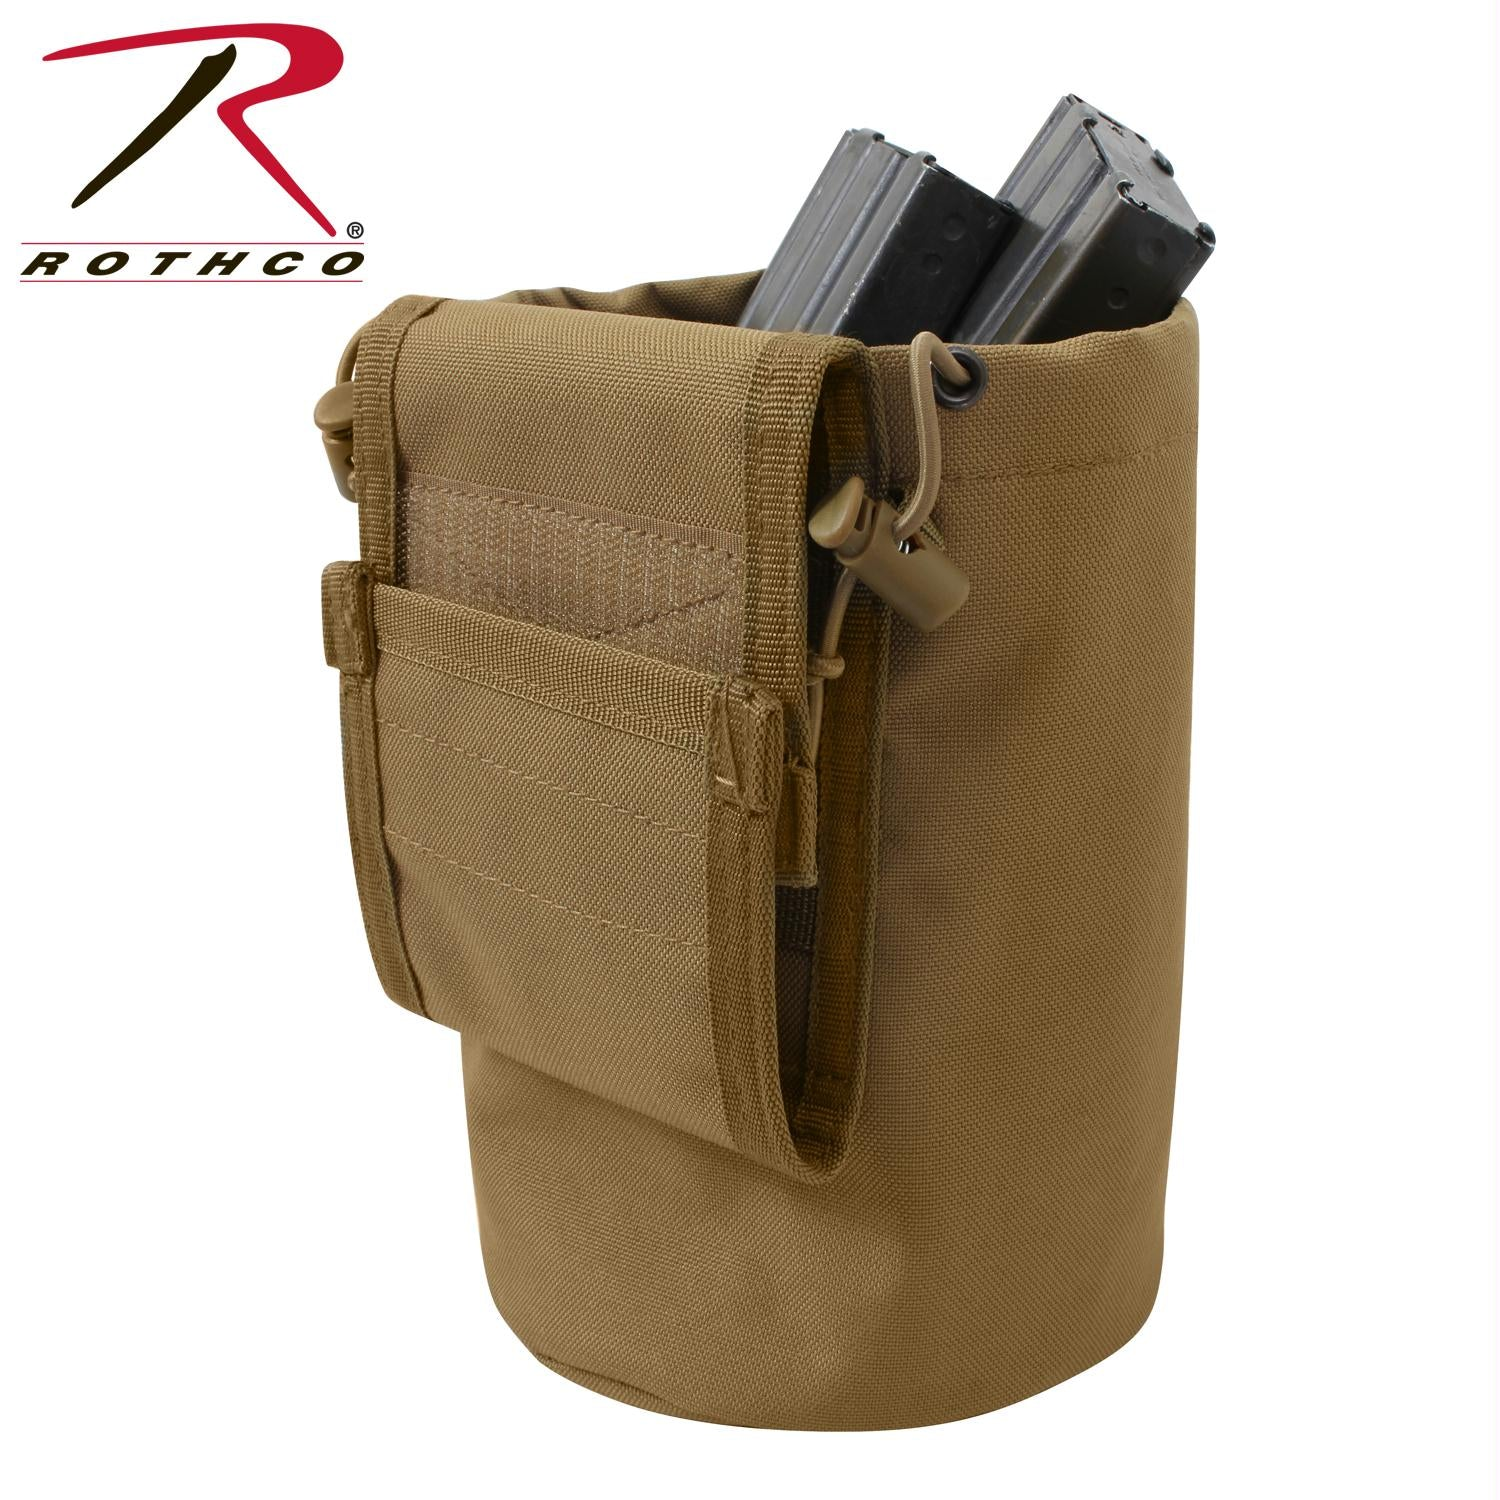 Rothco MOLLE Roll-Up Utility Dump Pouch - Coyote Brown